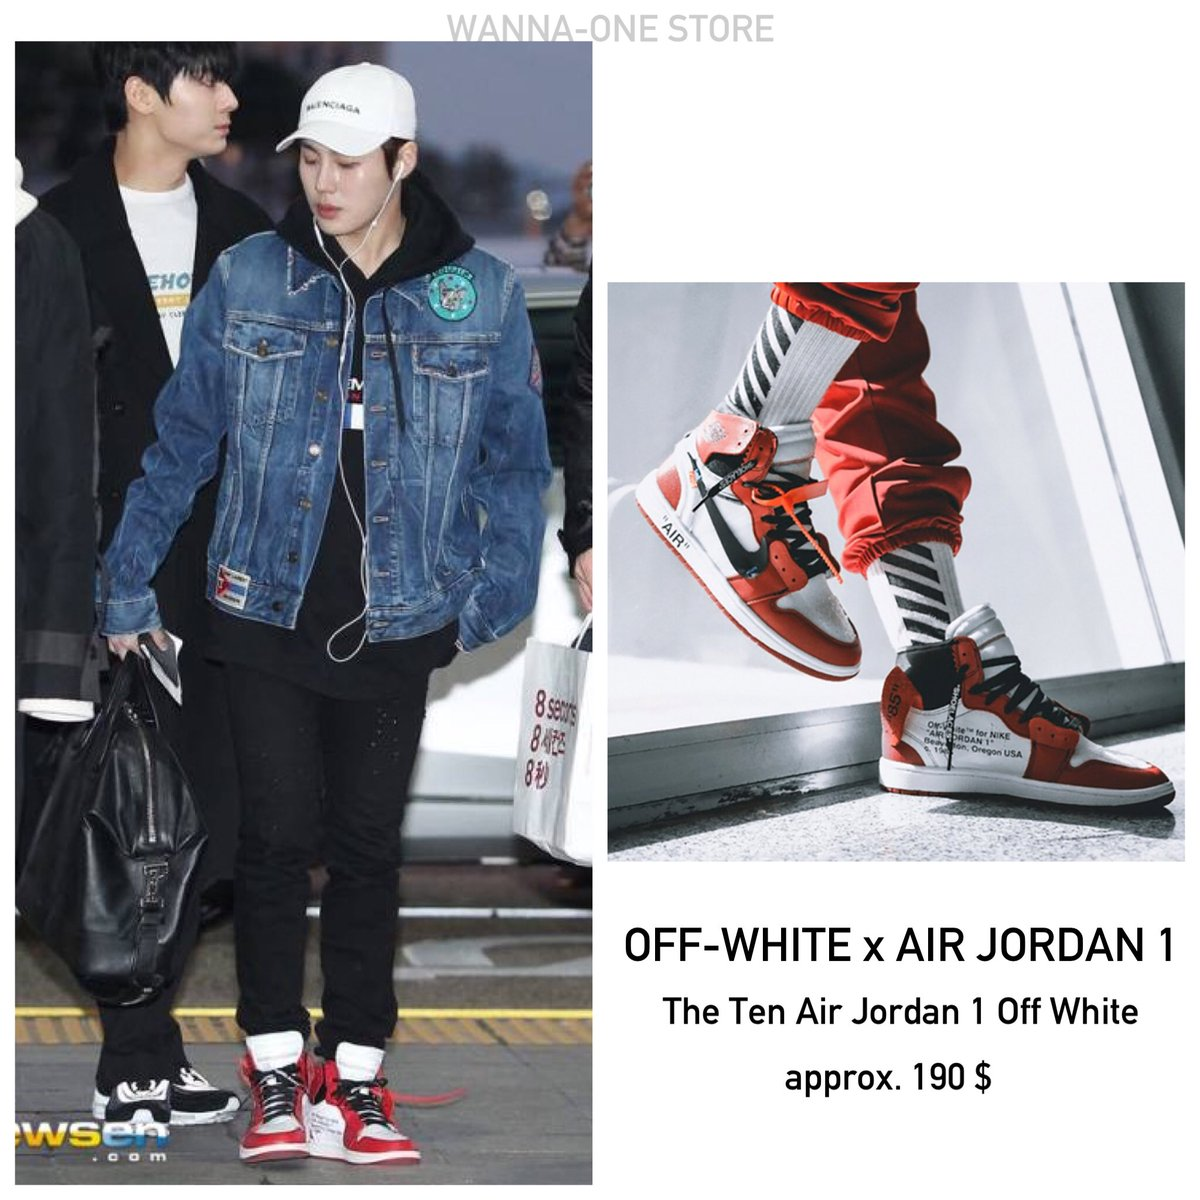 38d343eb26ad ... The Ten Air Jordan 1 Off White approx. 190    하성운  워너원  HaSungwoon   WannaOne Info ...